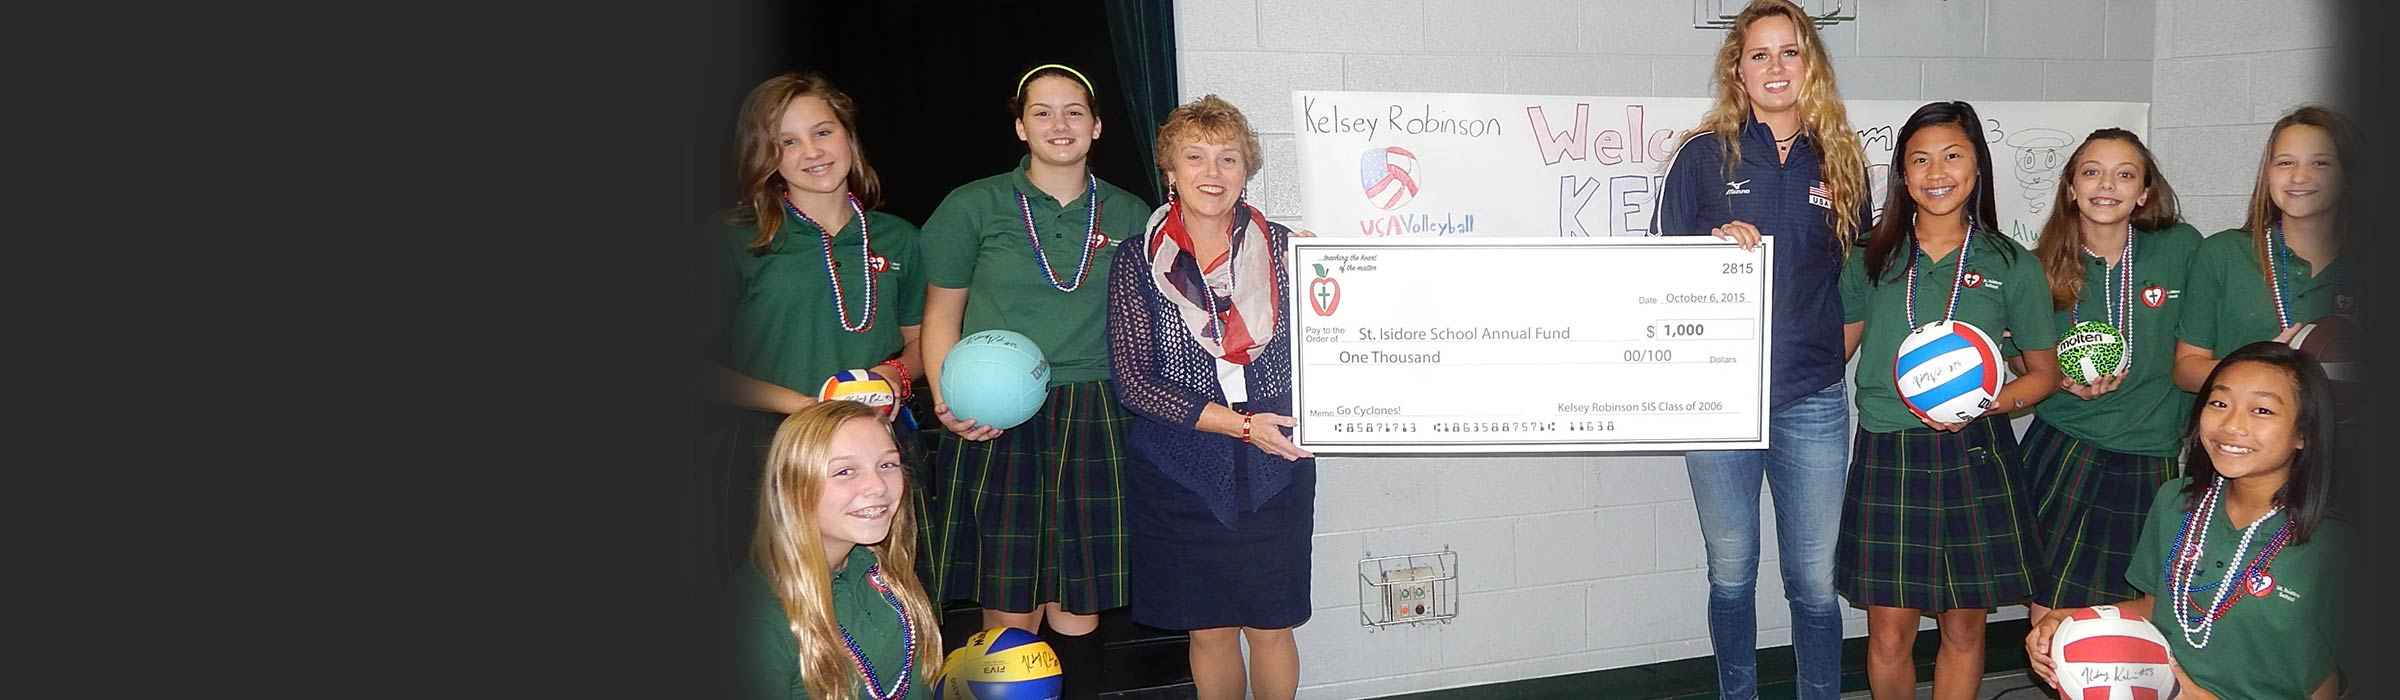 2006 St Isidore grad Kelsey Robinson,a member of Team USA's National Women's Volleyball and plays professionally overseas, presents a check to the St. Isidore Annual Alumni Fund to Mrs. Collins and members of the SIS 8th grade girls' volleyball team. See story on Kelsey's visit under Featured News.